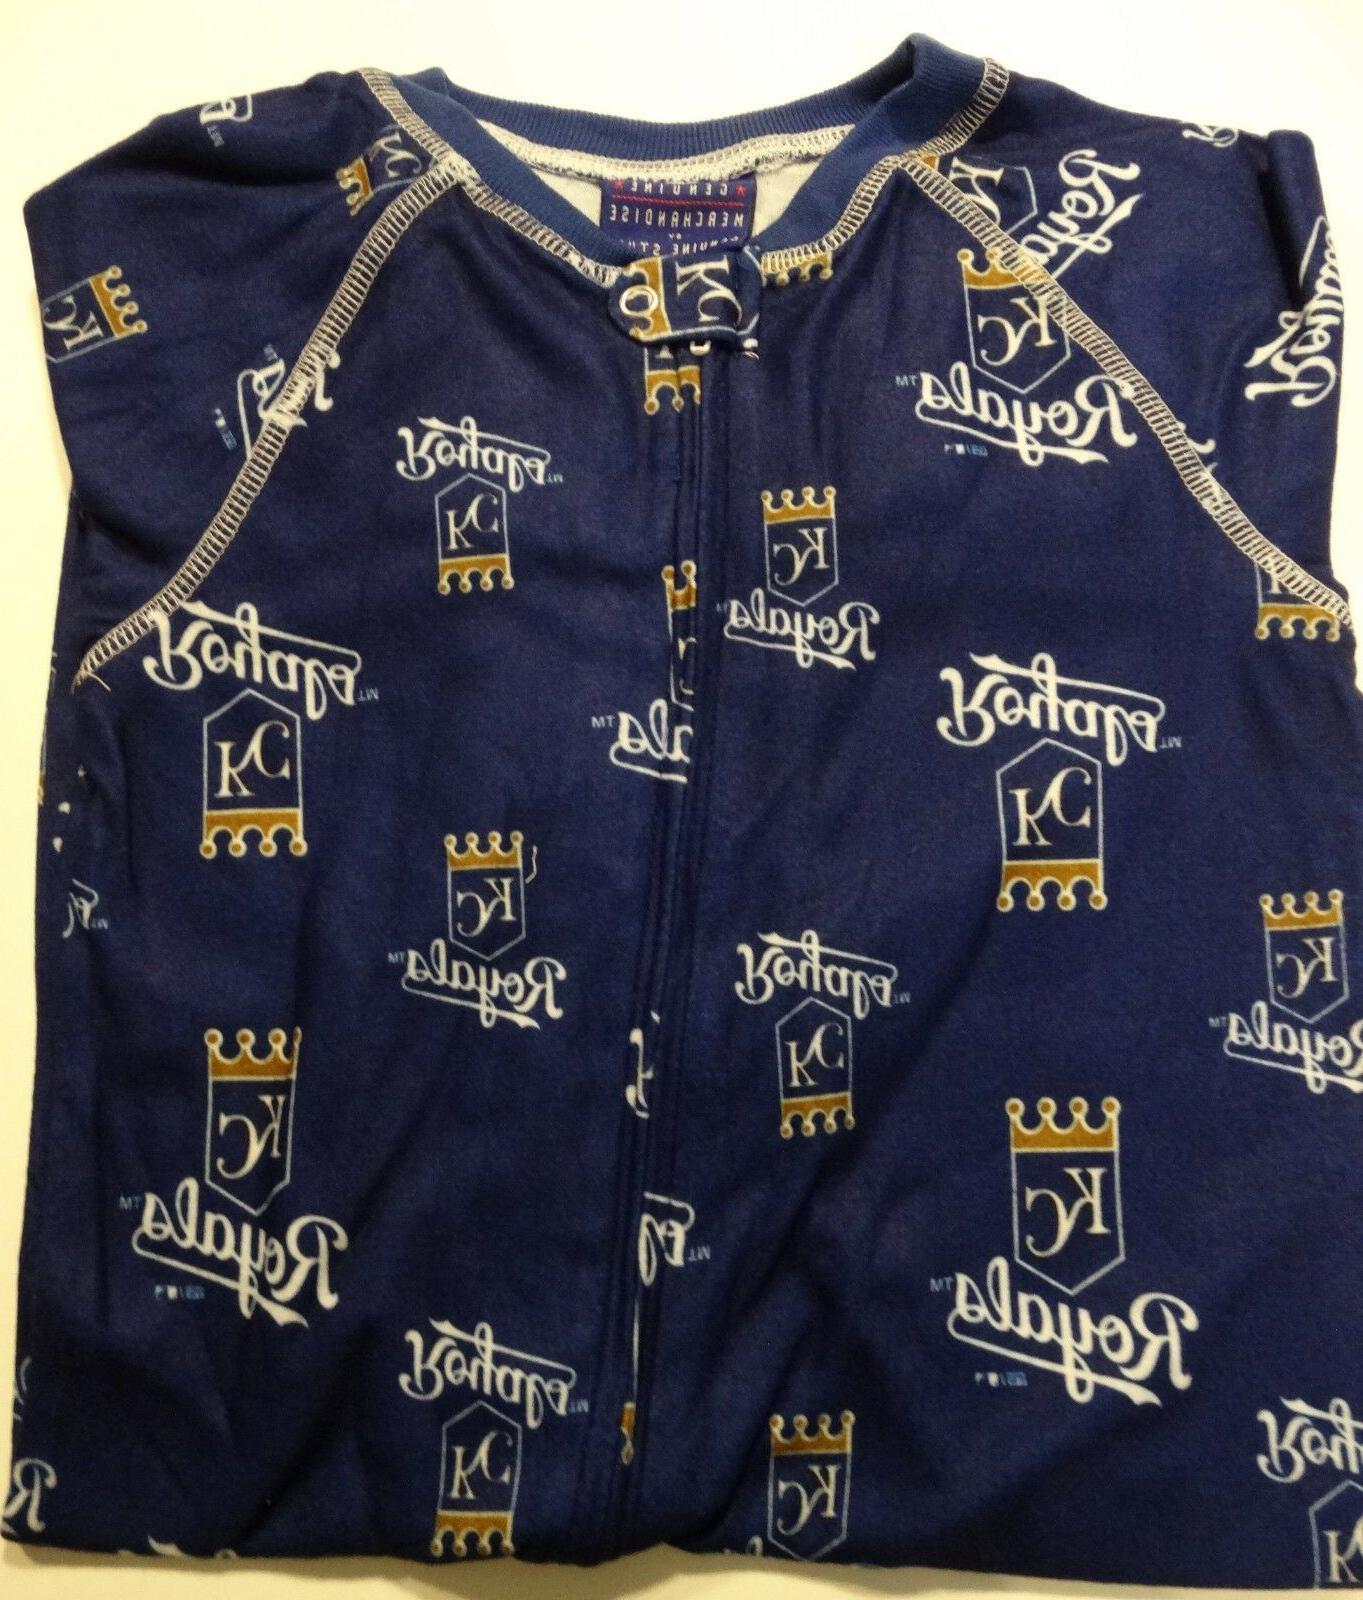 NWT MLB City Royals 24 Navy Sleepwear